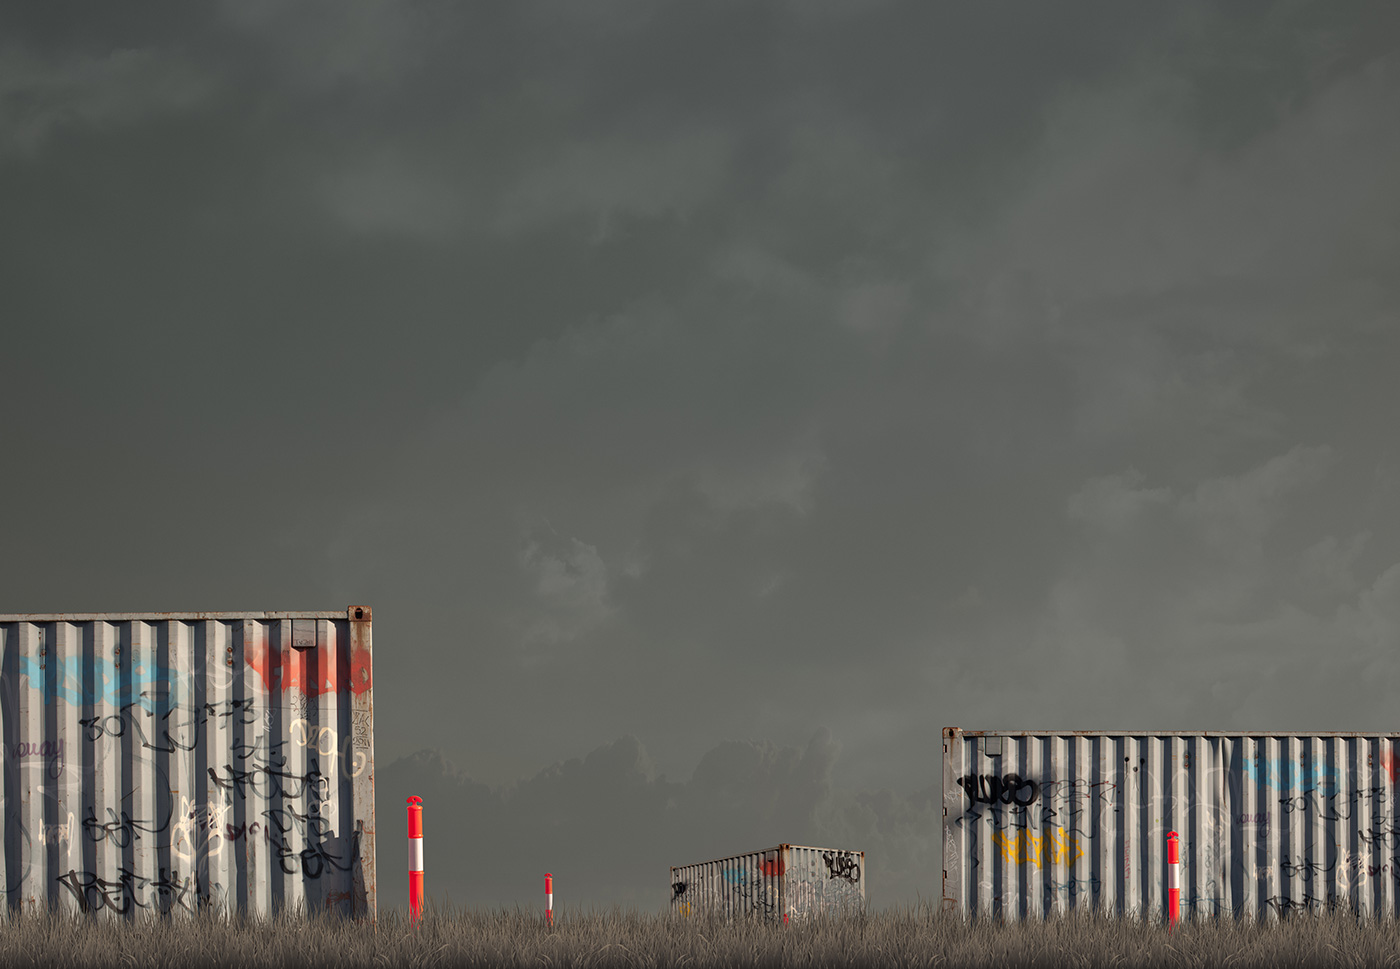 Container Hil   Pigment print on archival rag  l   110 x 154.5cm    Edition of 7 +2AP